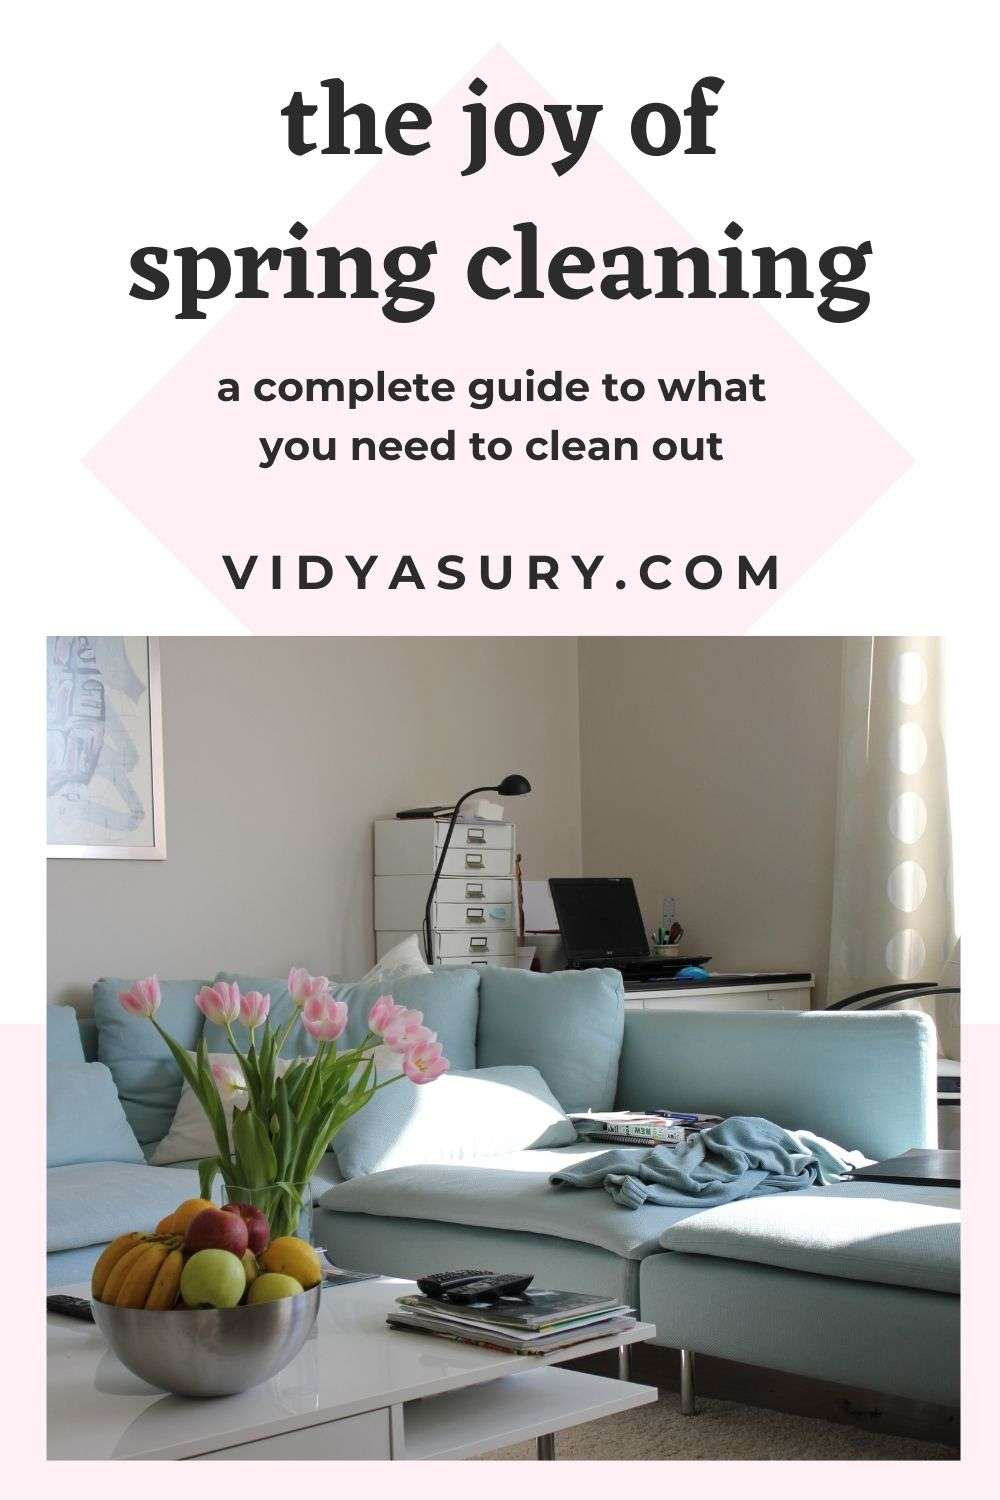 the joy of spring cleaning guide